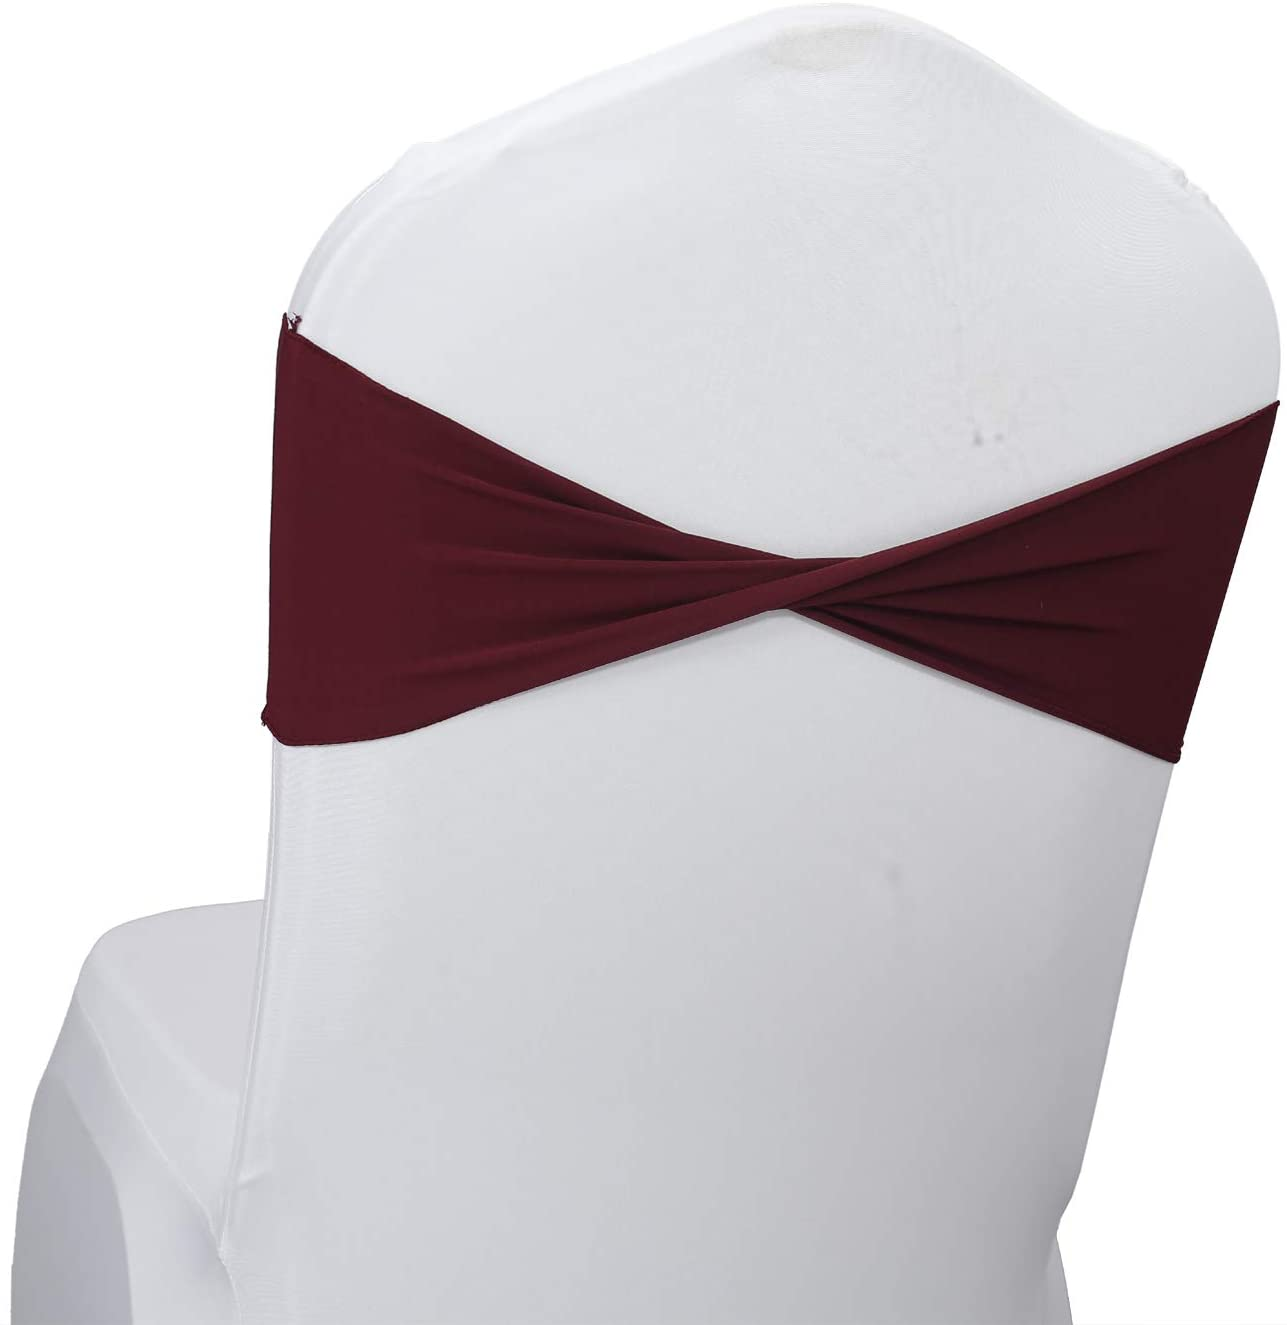 mds Pack Limited time trial favorite price of 100 Spandex Chair Sashes sash Band Elastic Bow